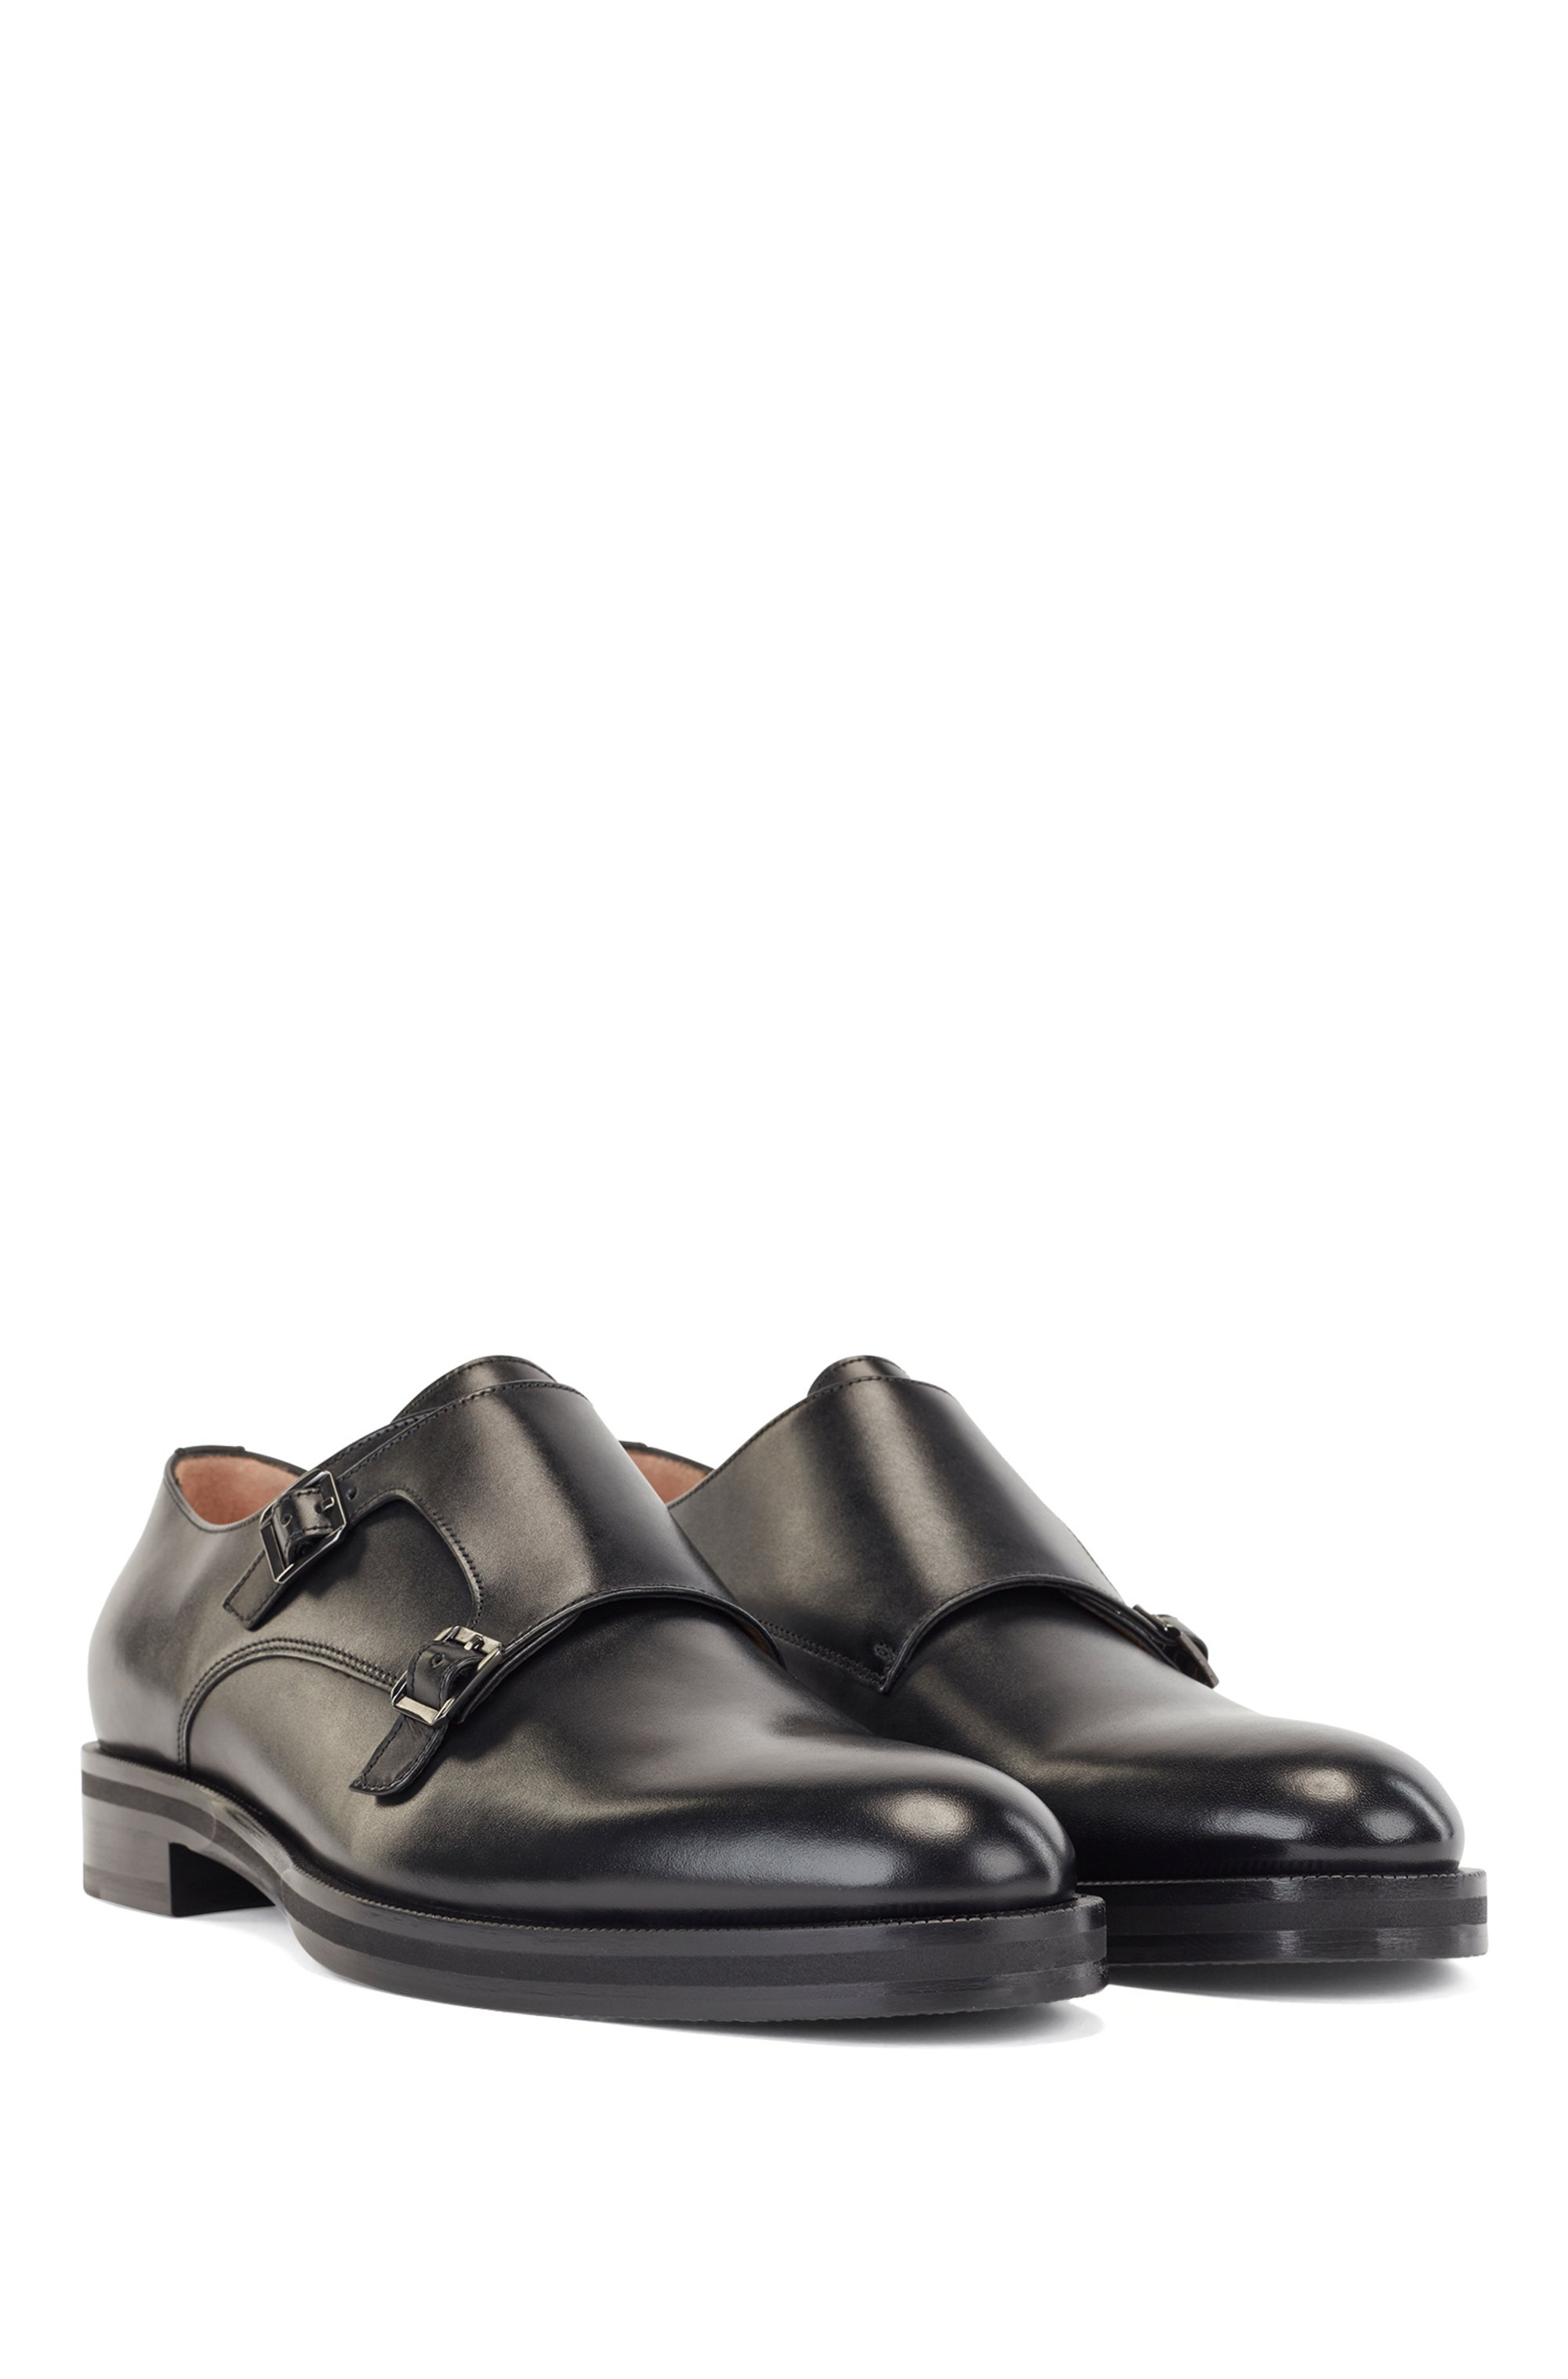 Italian-made double-monk shoes in calf leather